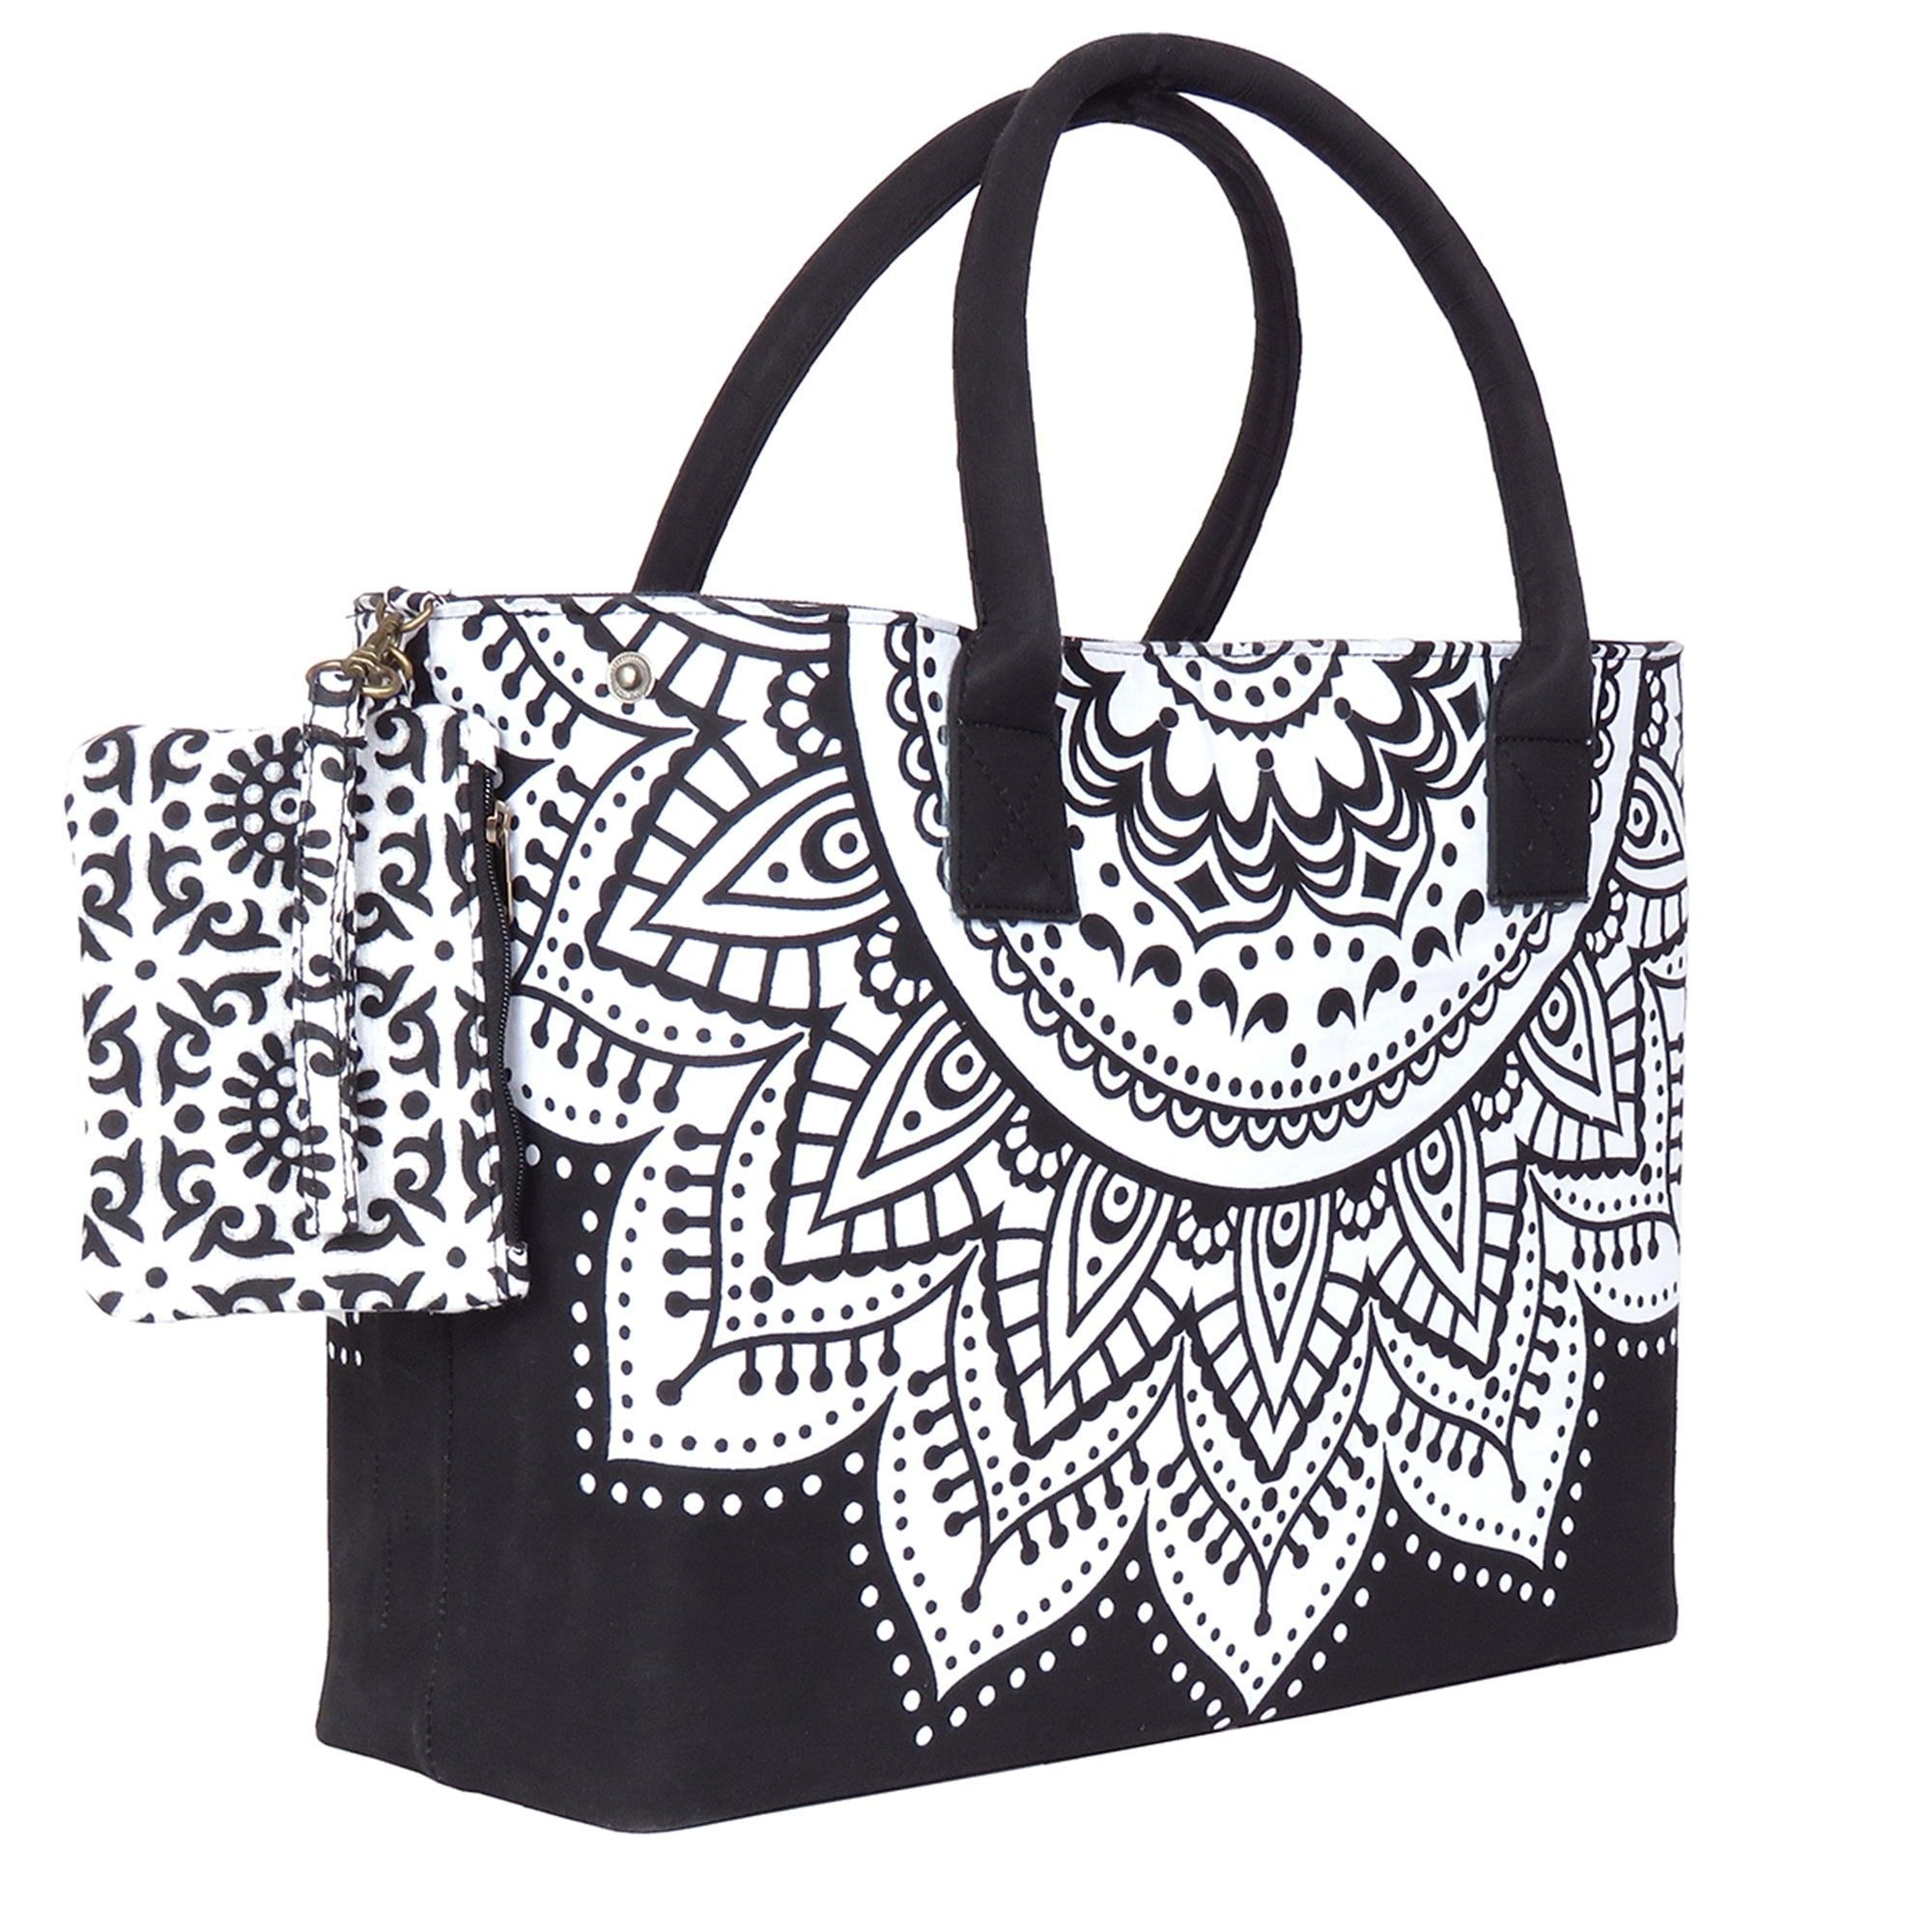 united states hot product 2018 shoes Black and White Trendy Beach Bag for perfect beach Holiday ...